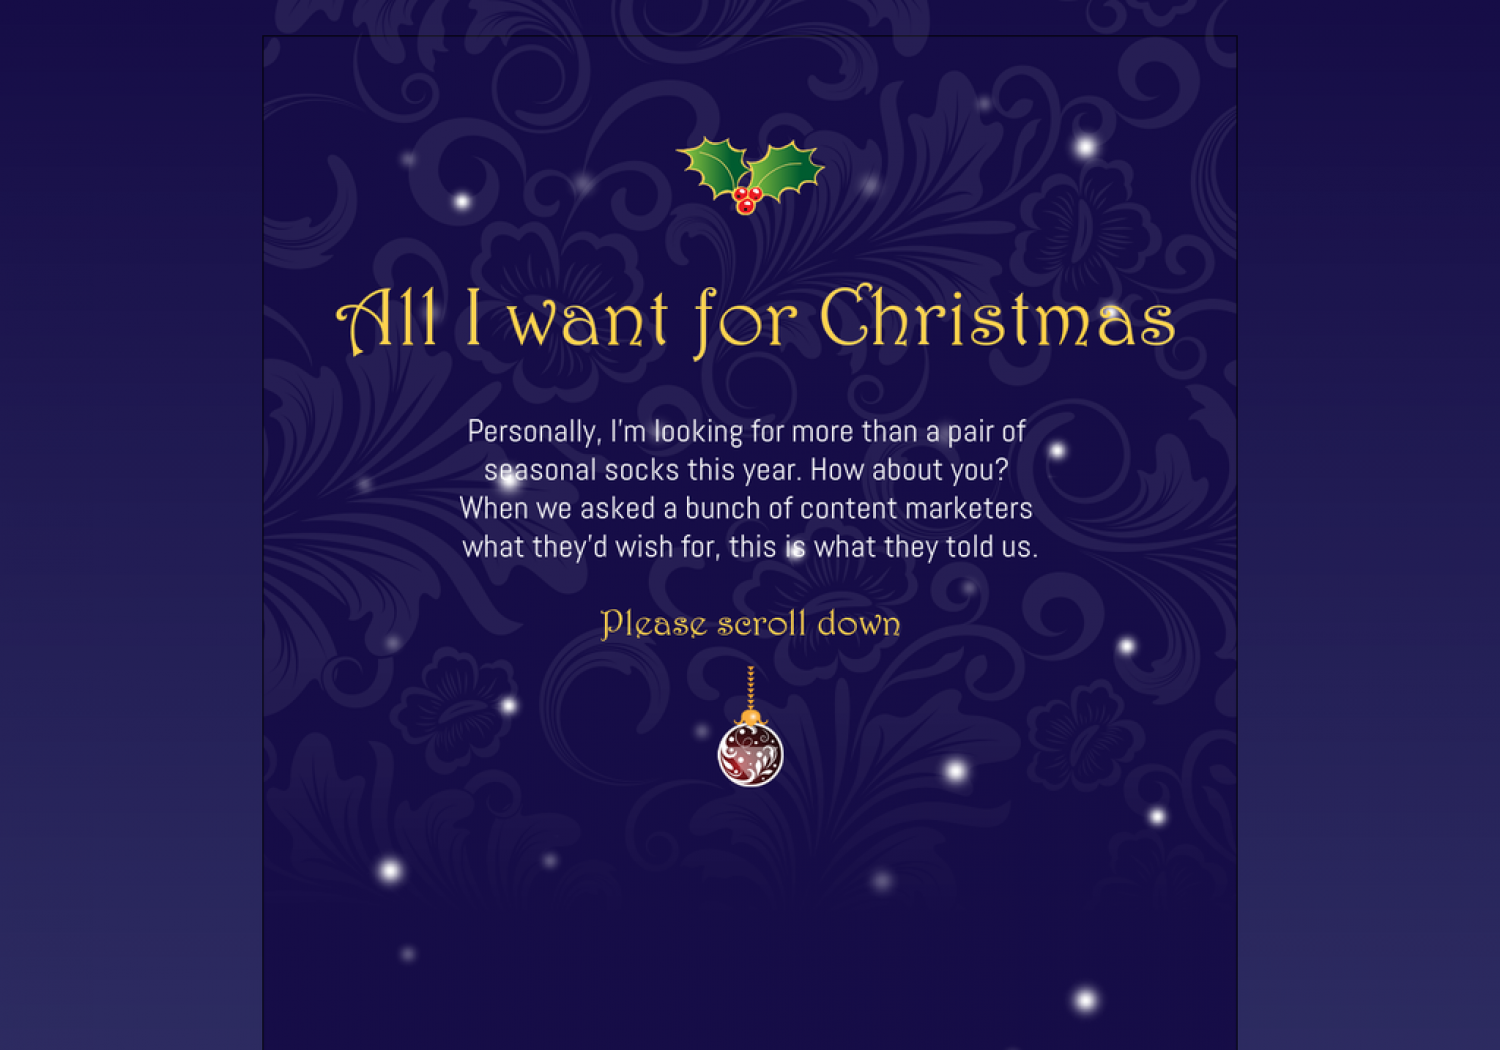 All I want for Christmas | Visual.ly